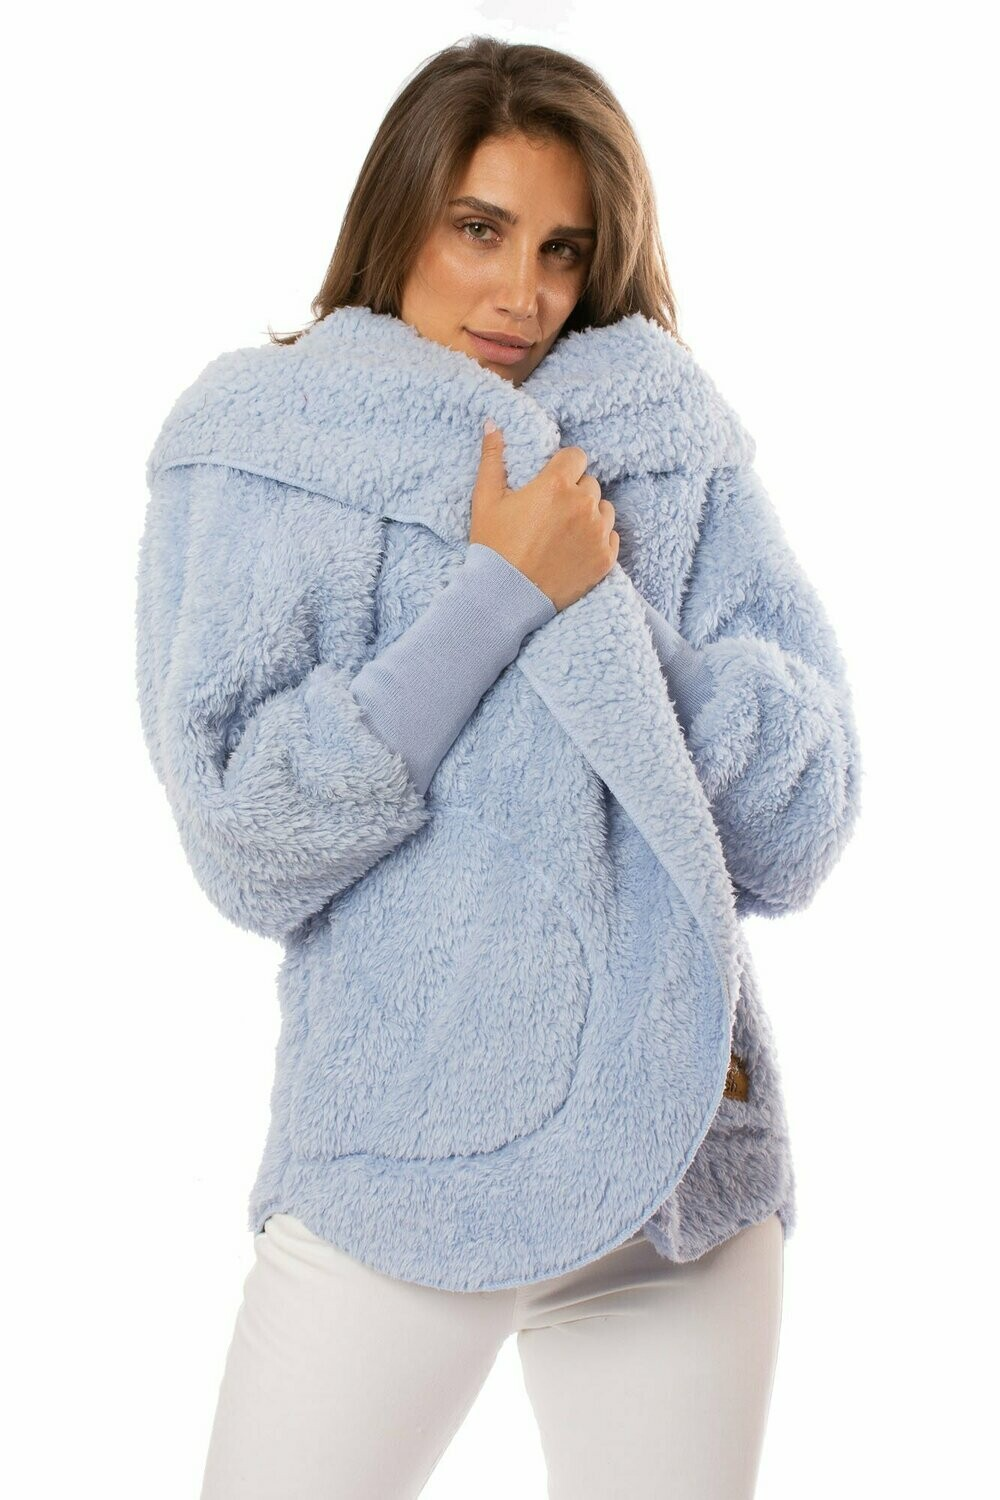 Nordic Beach Body Wrap - Cashmere Blue - One Size